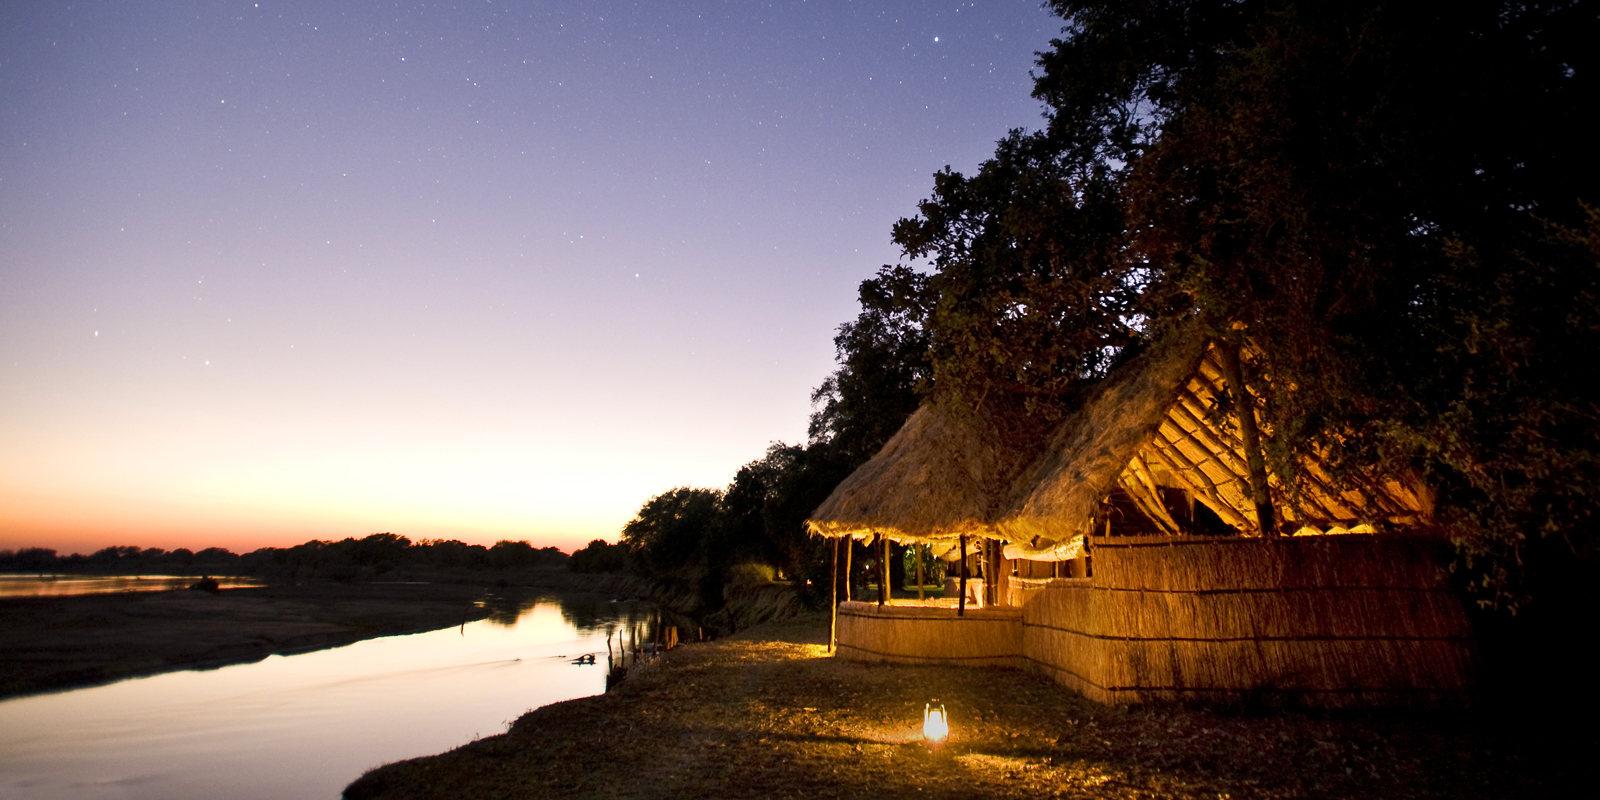 Zambia - South Luangwa National Park - 1564 - Tafika Camp at Night